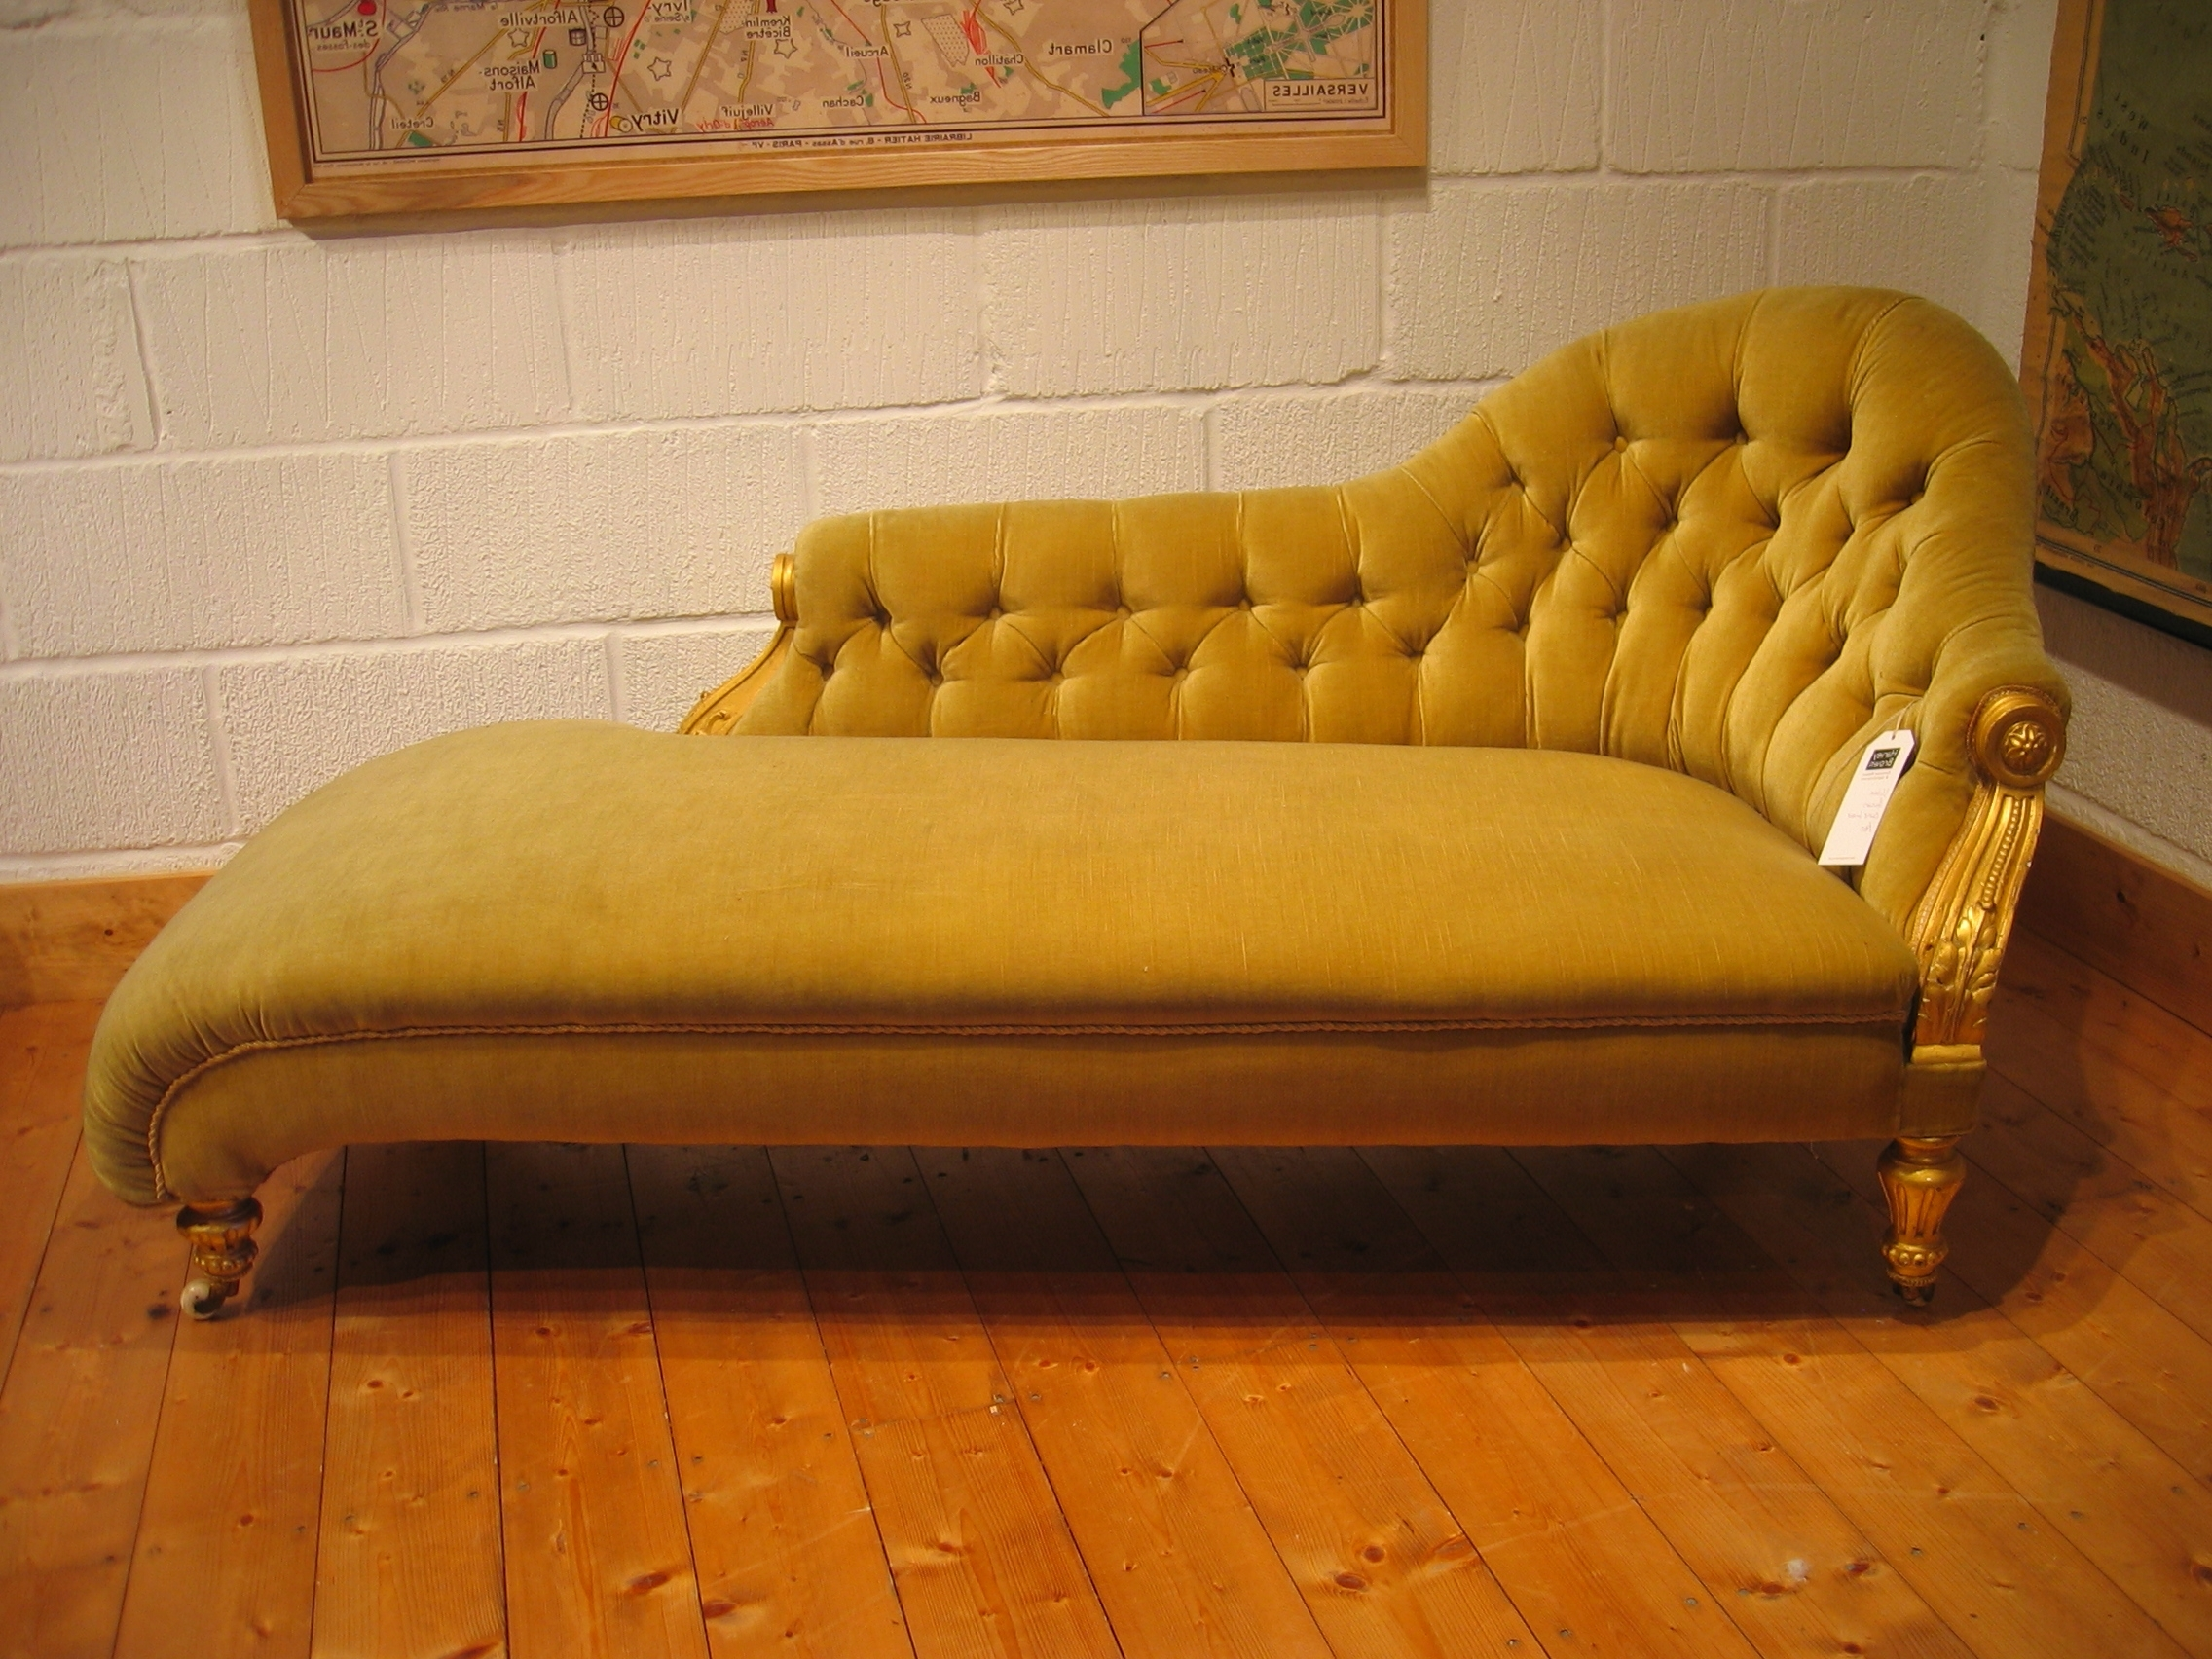 Newest Yellow Color Antique Victorian Chaise Lounge Sofa Bed With Wooden Throughout Yellow Chaise Lounges (View 5 of 15)